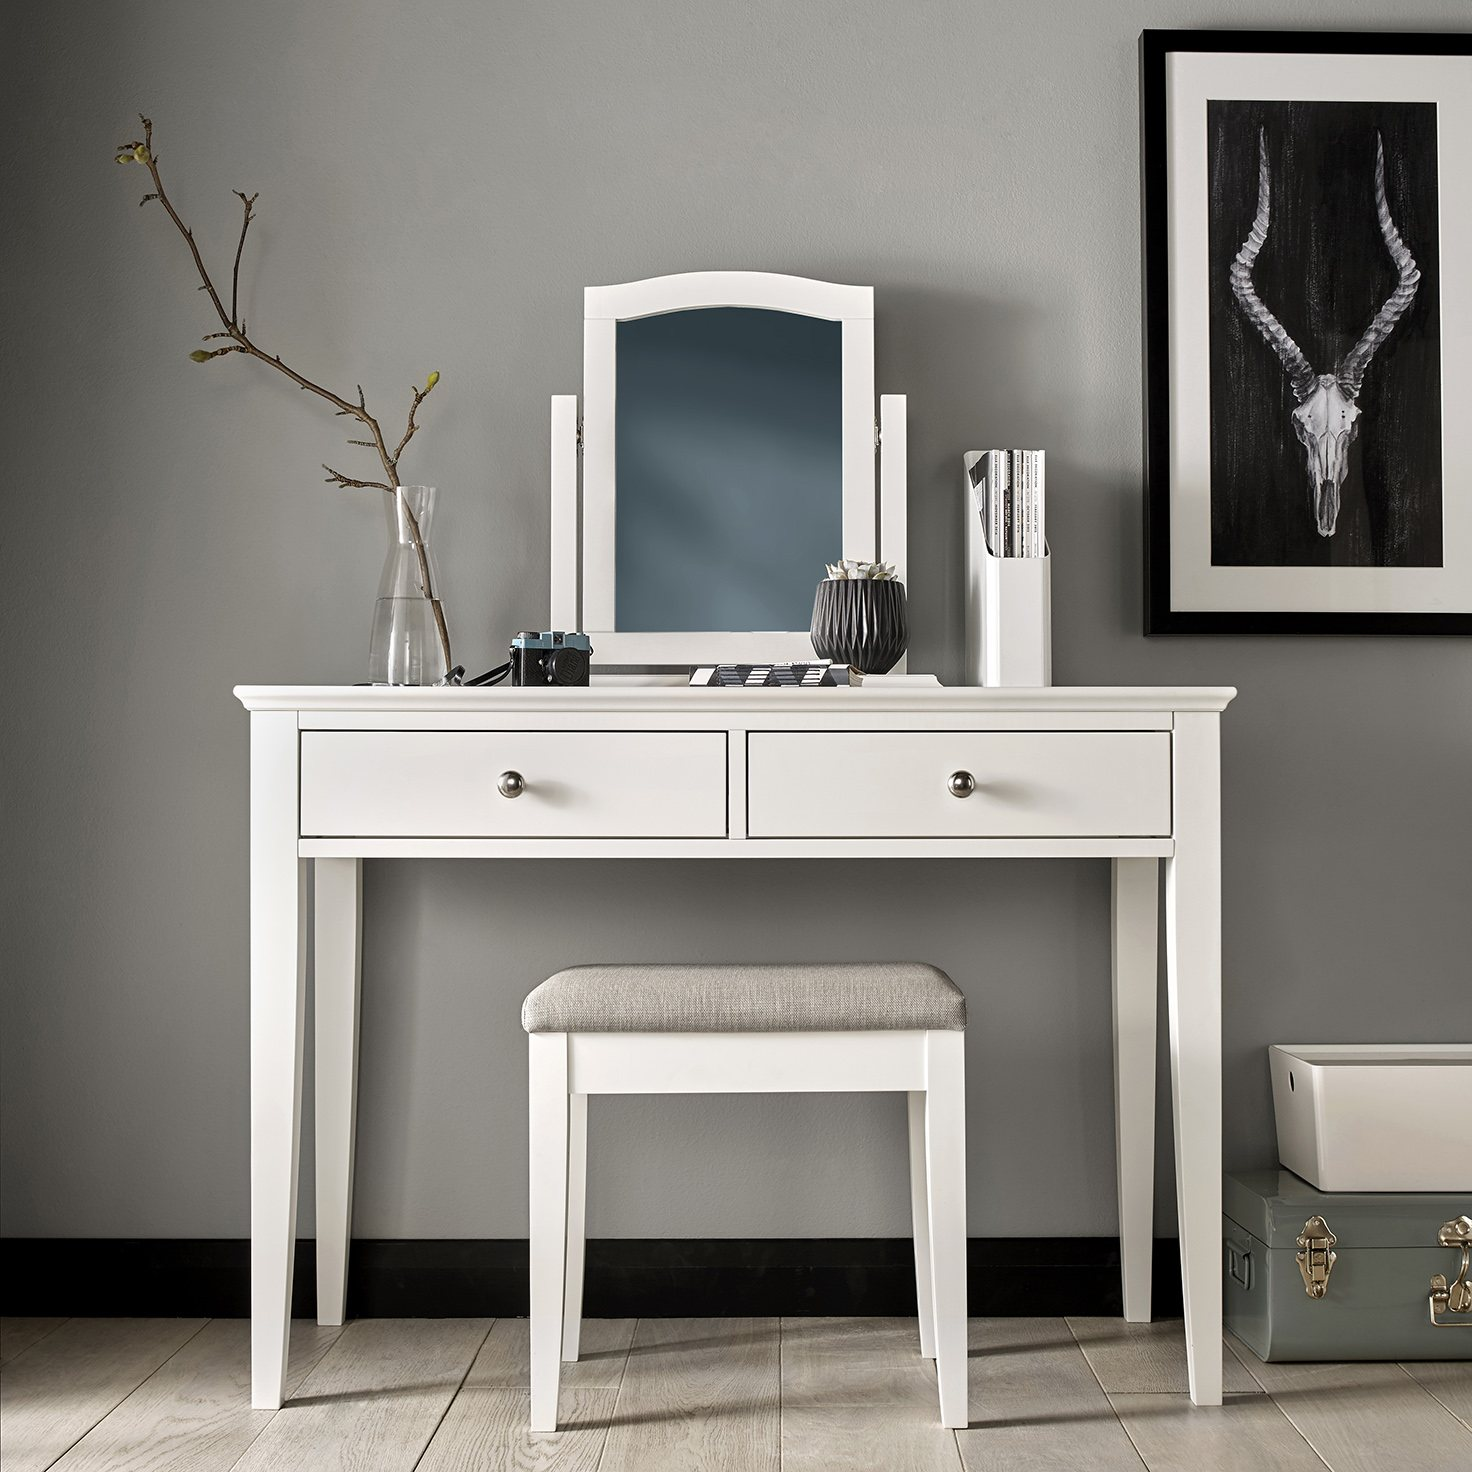 ASHLEY (GREY or WHITE) DRESSING TABLE - L109cm x D47cm x H78cm